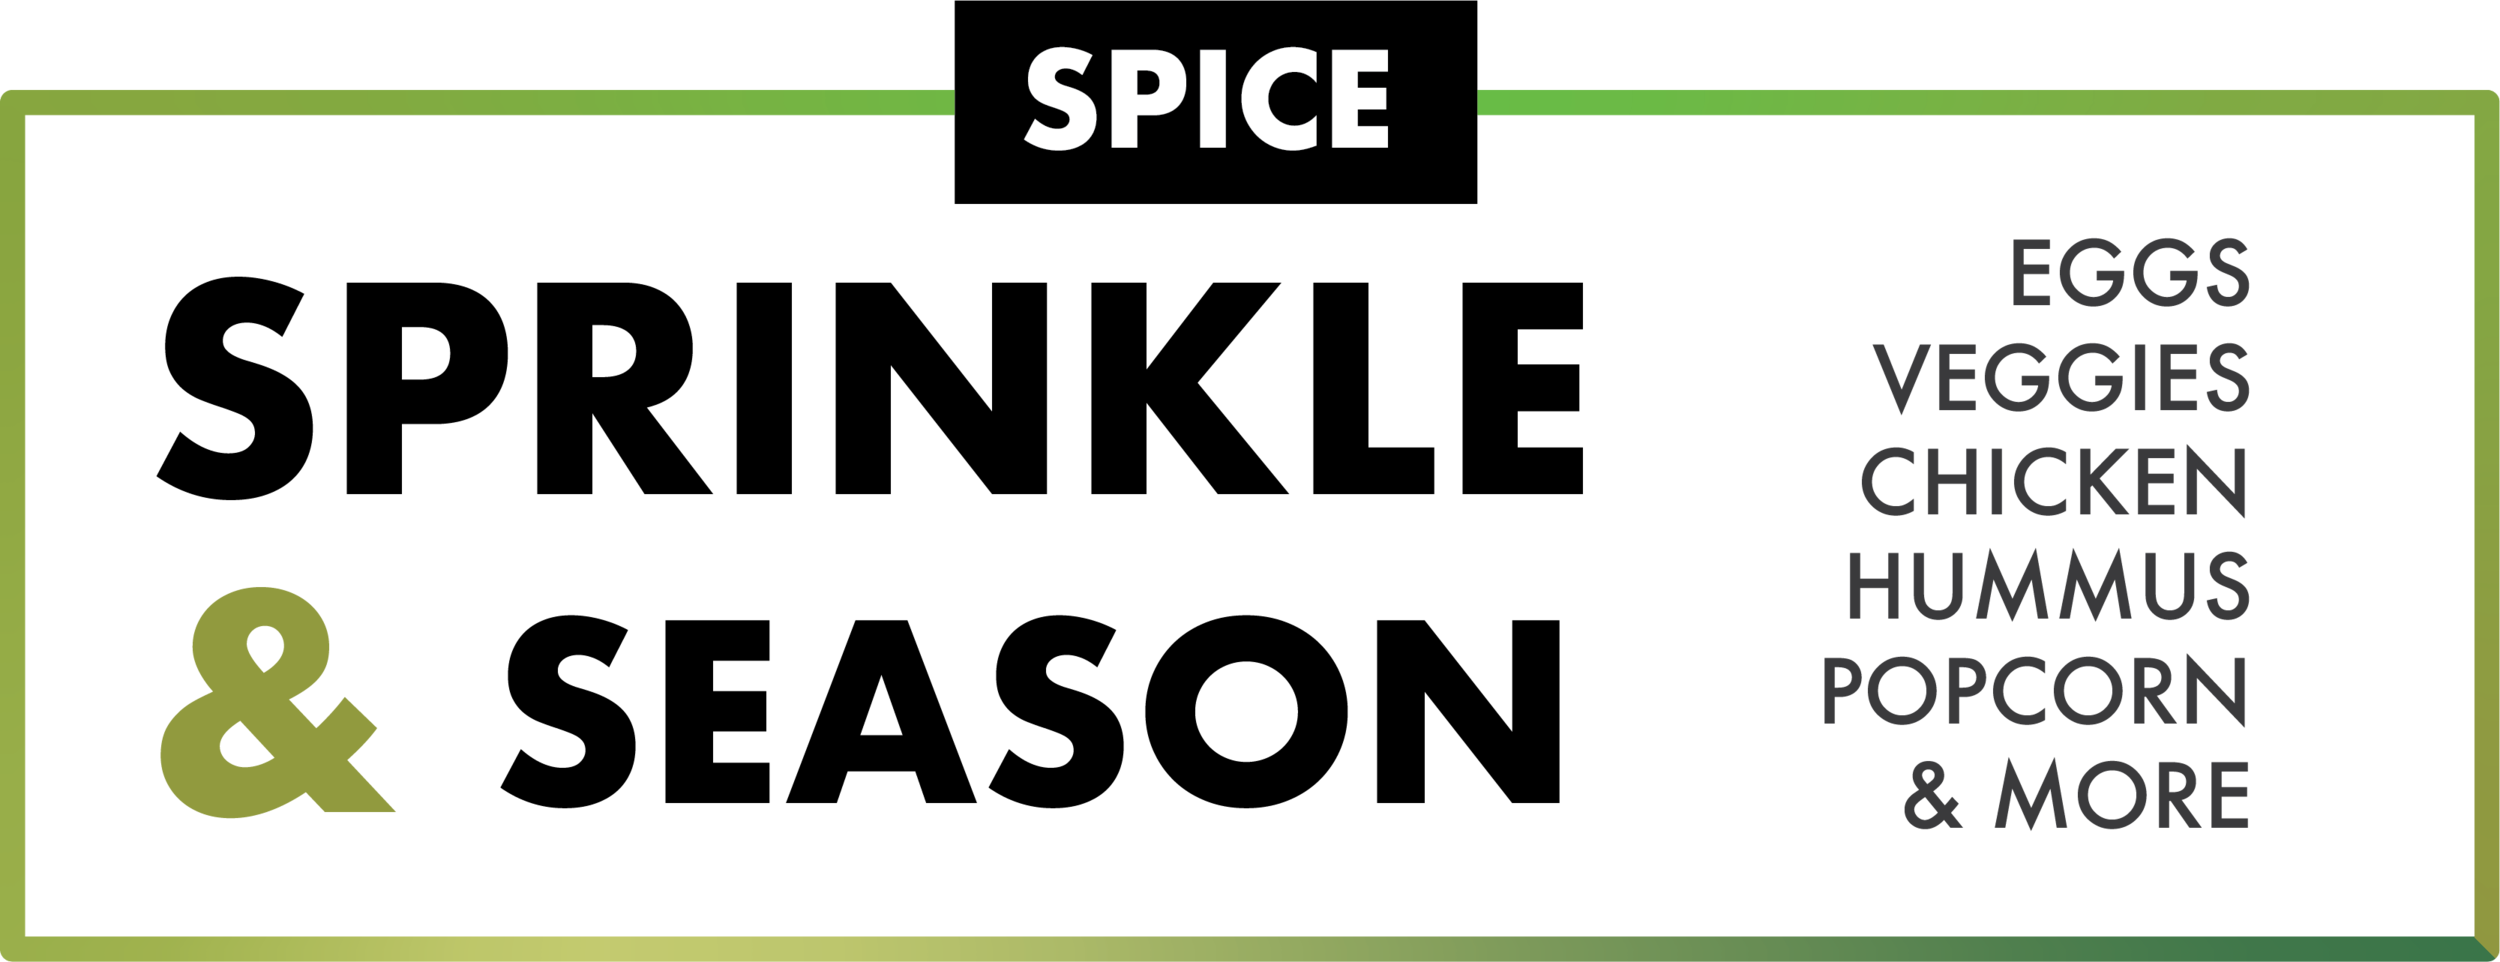 Spice.png